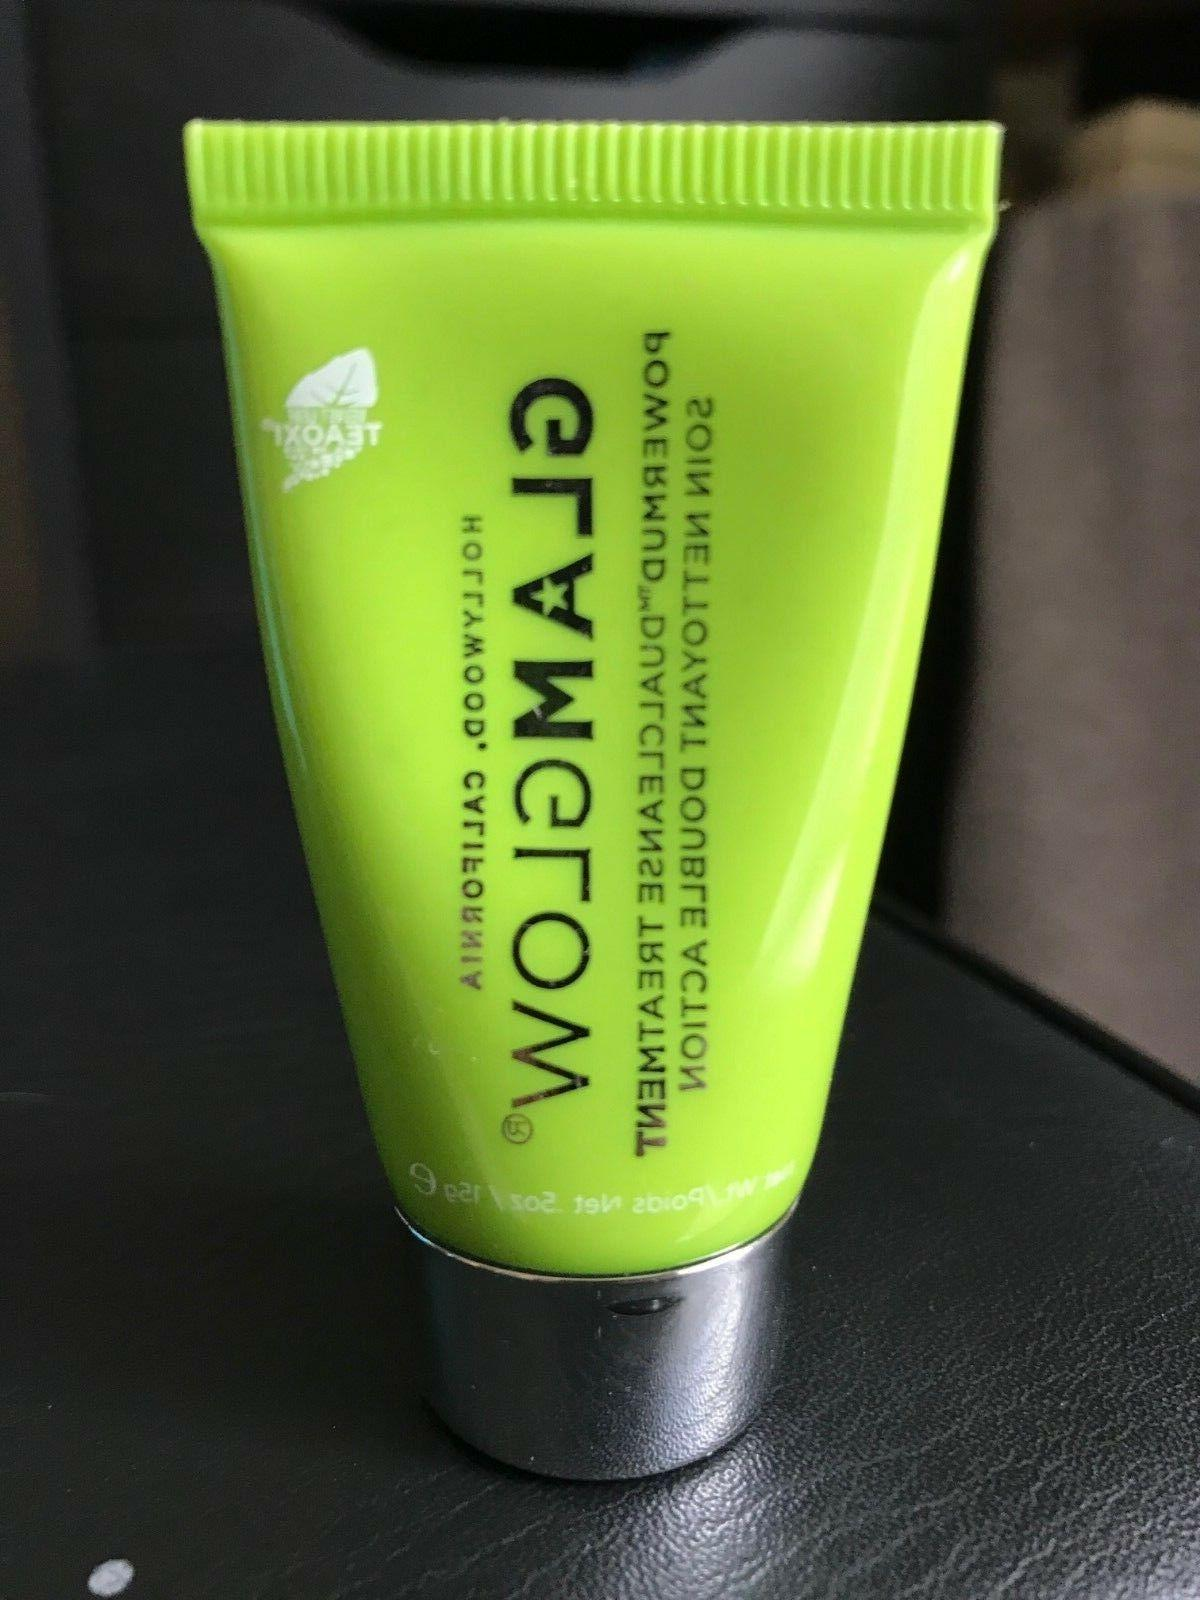 Glamglow Cleanse, mud cleanse, hydrating)